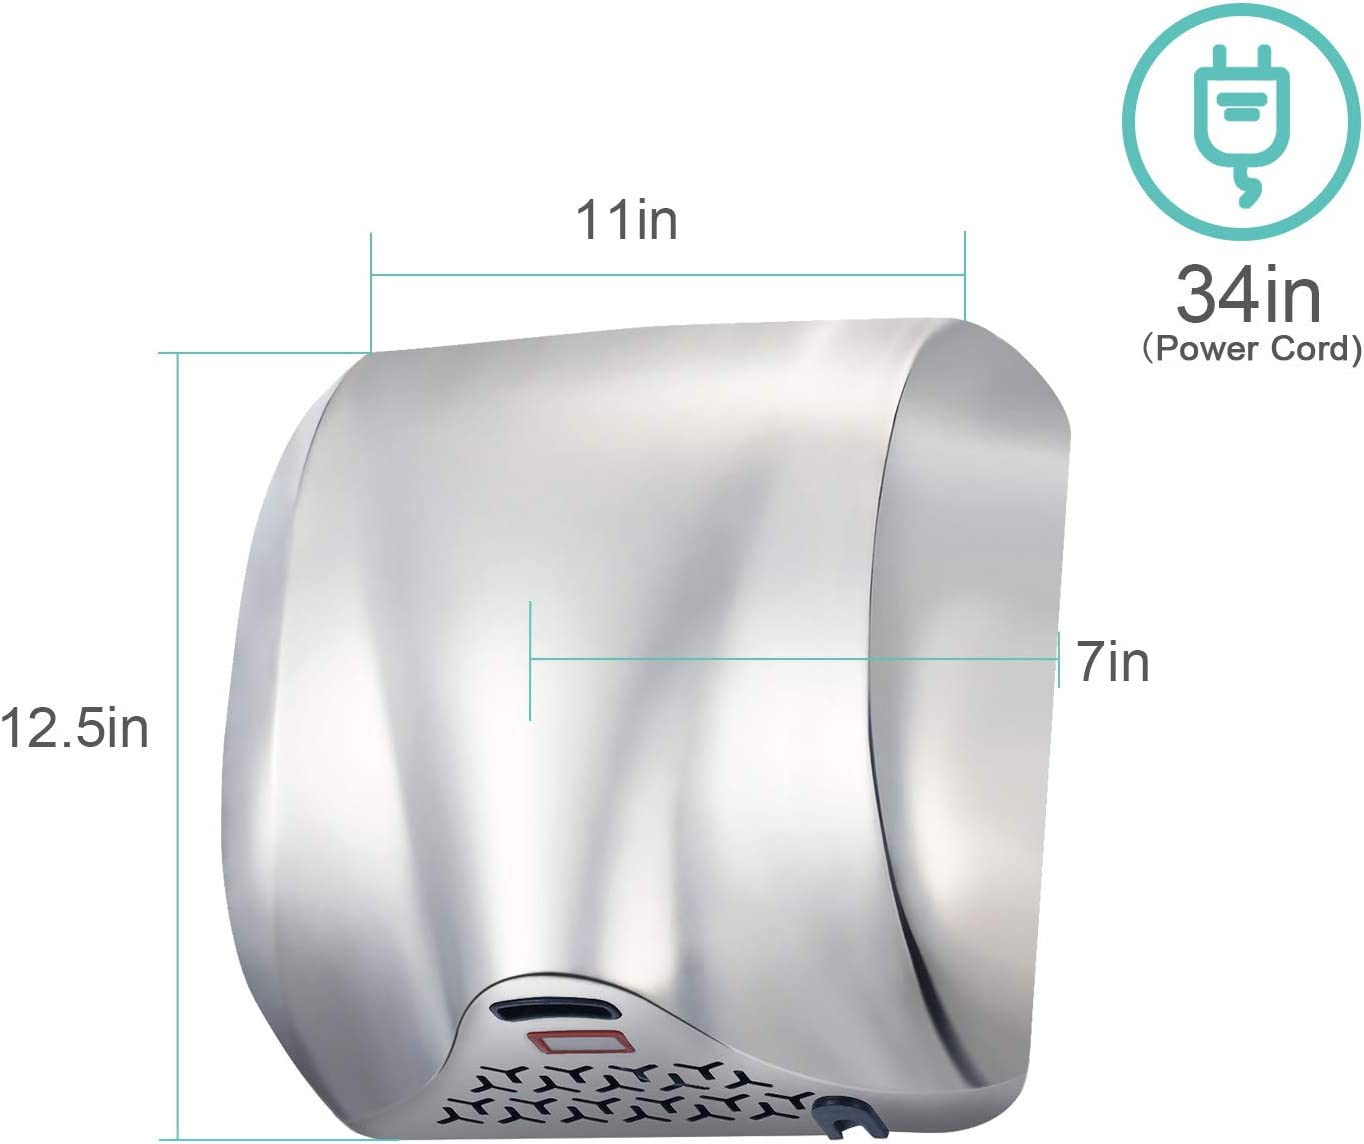 PENSON /& CO Instant Heat /& Dry K2017 Silver AHD-2017-01-K TCBunny Super Quiet Automatic Electric Hand Dryer Commercial High Speed 90m//s